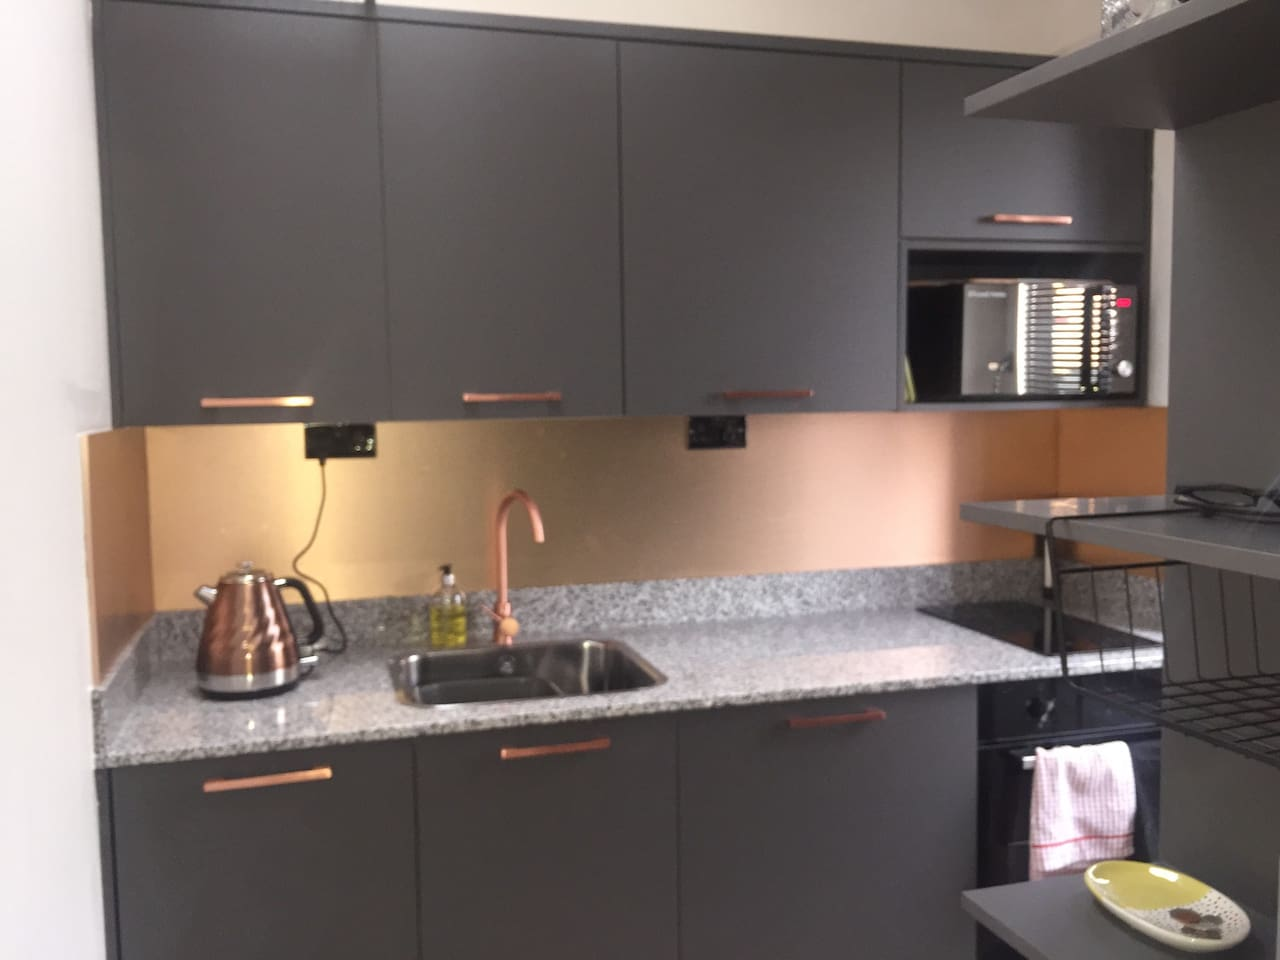 Luxury compact kitchenette with granite worktop. Integrated dishwasher and washing machine included.